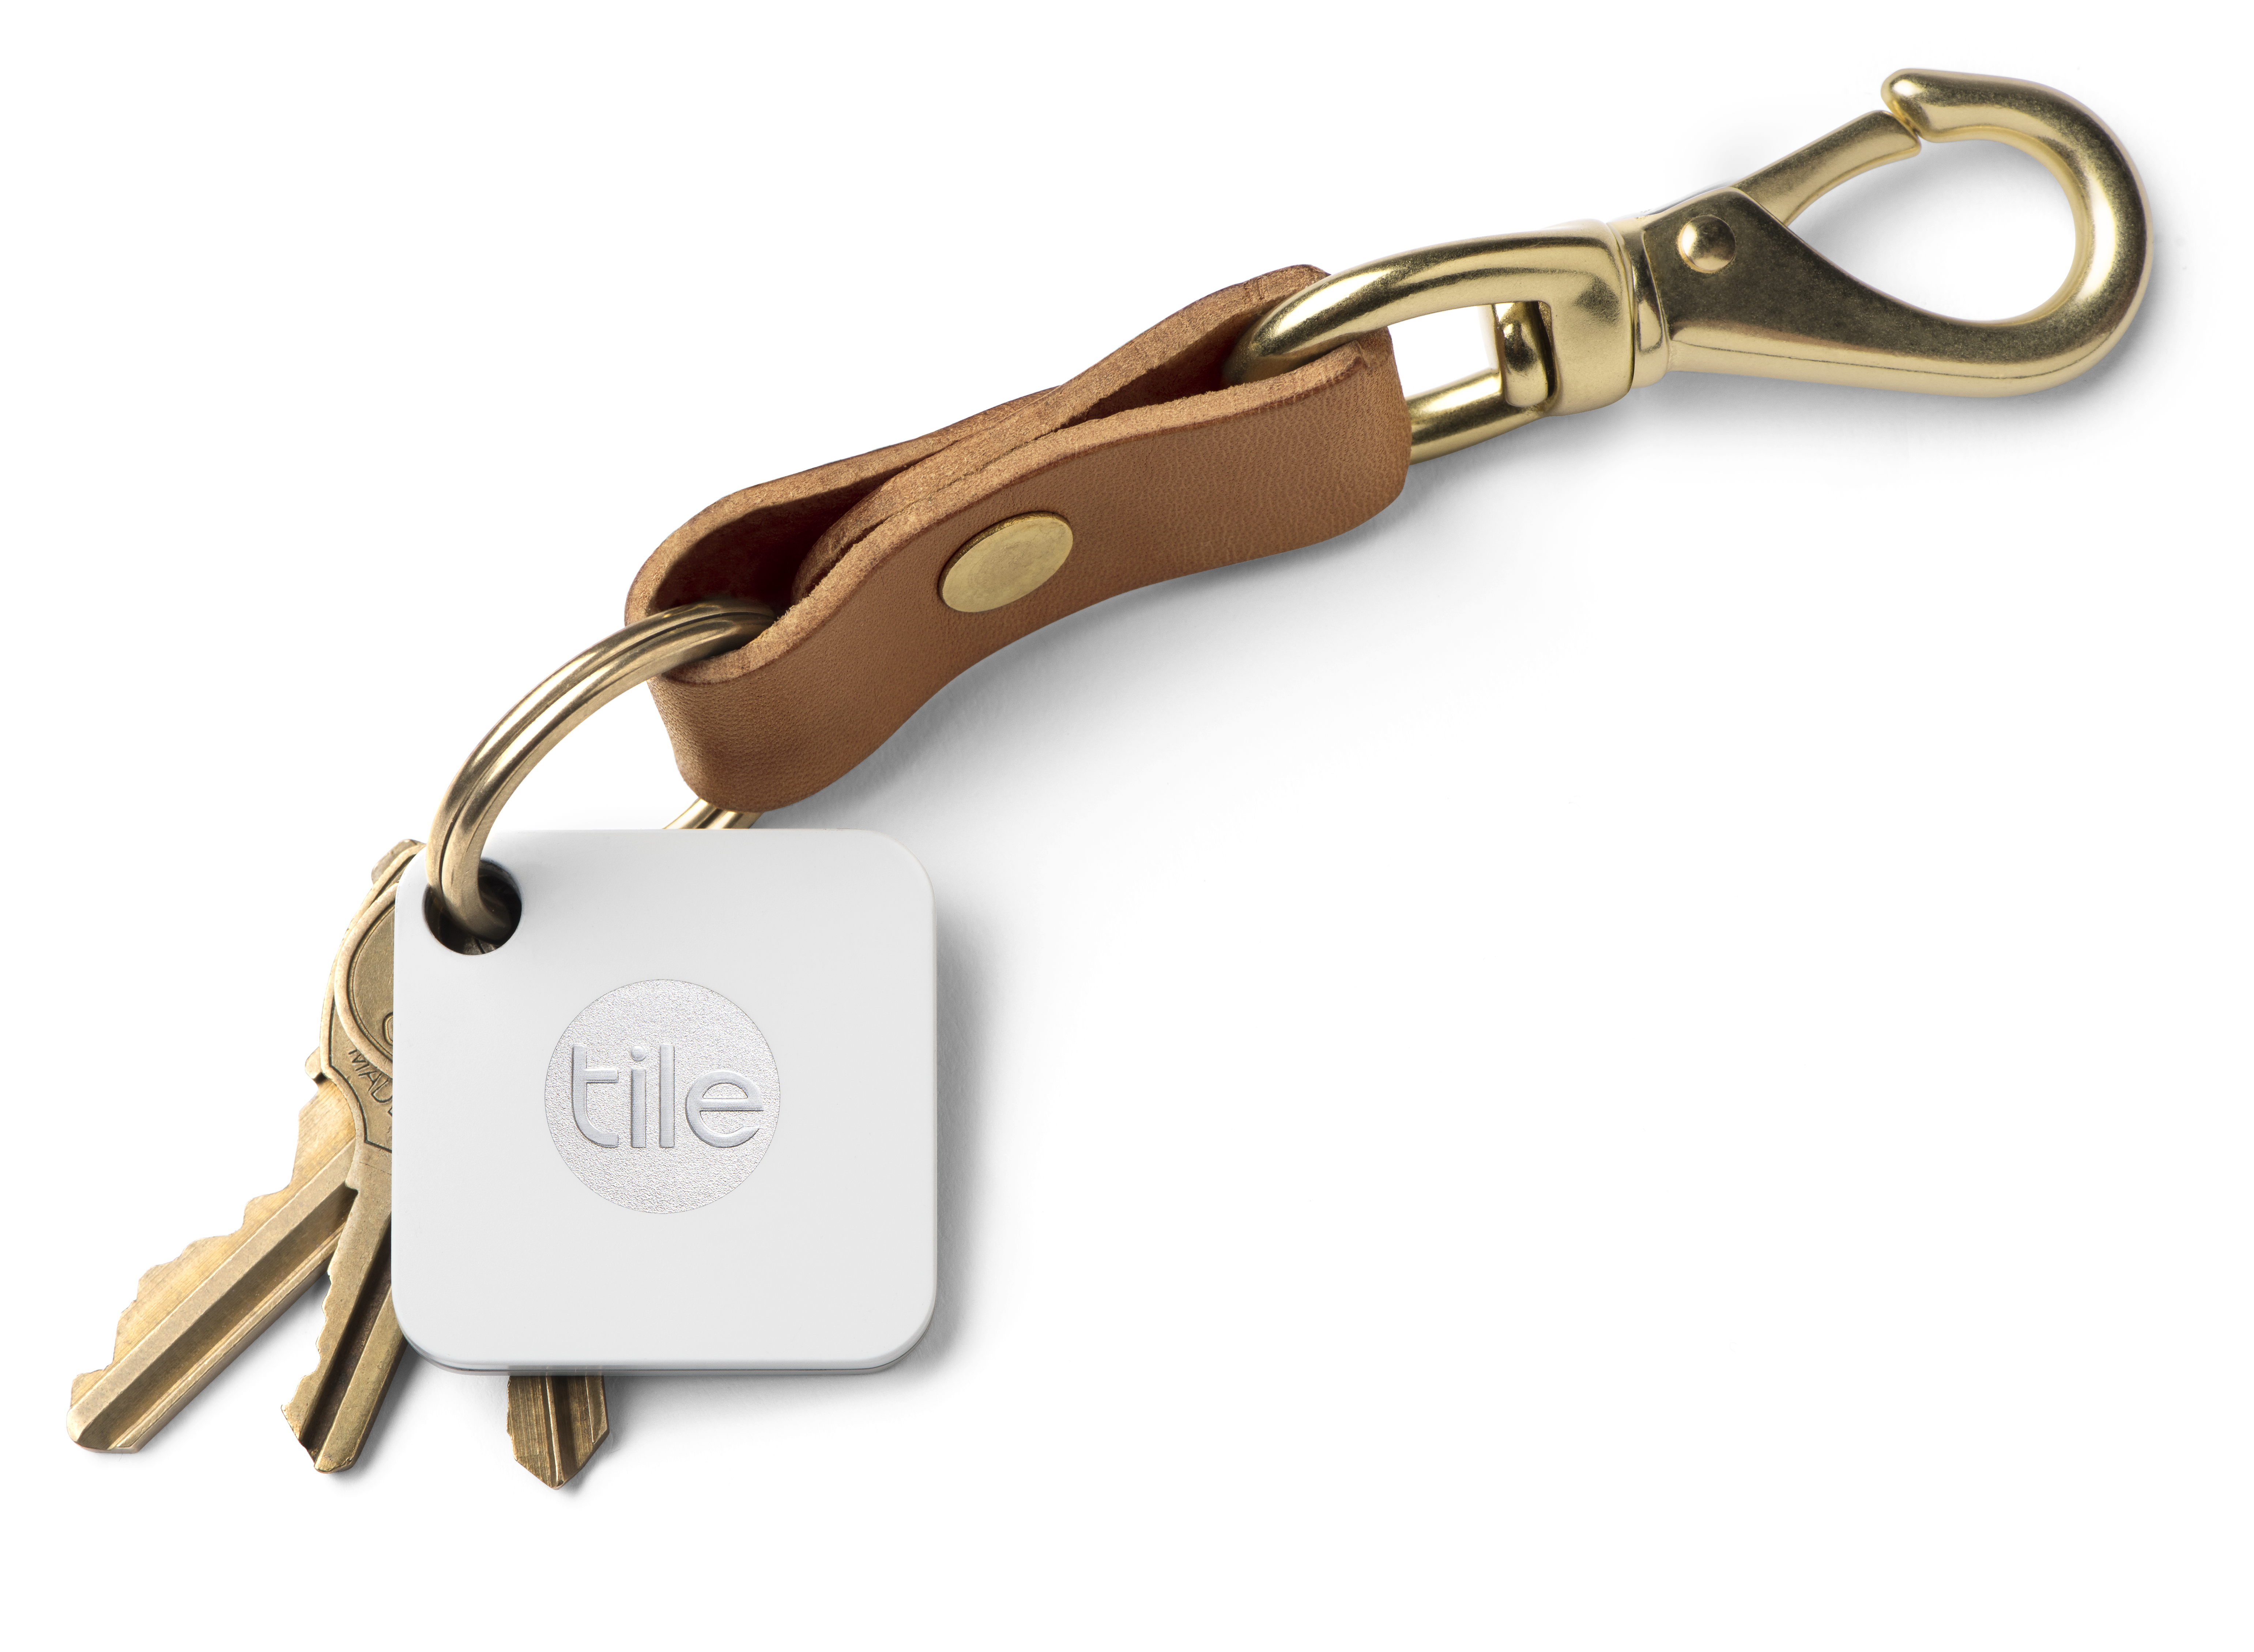 Tile Introduces A Thinner Lighter